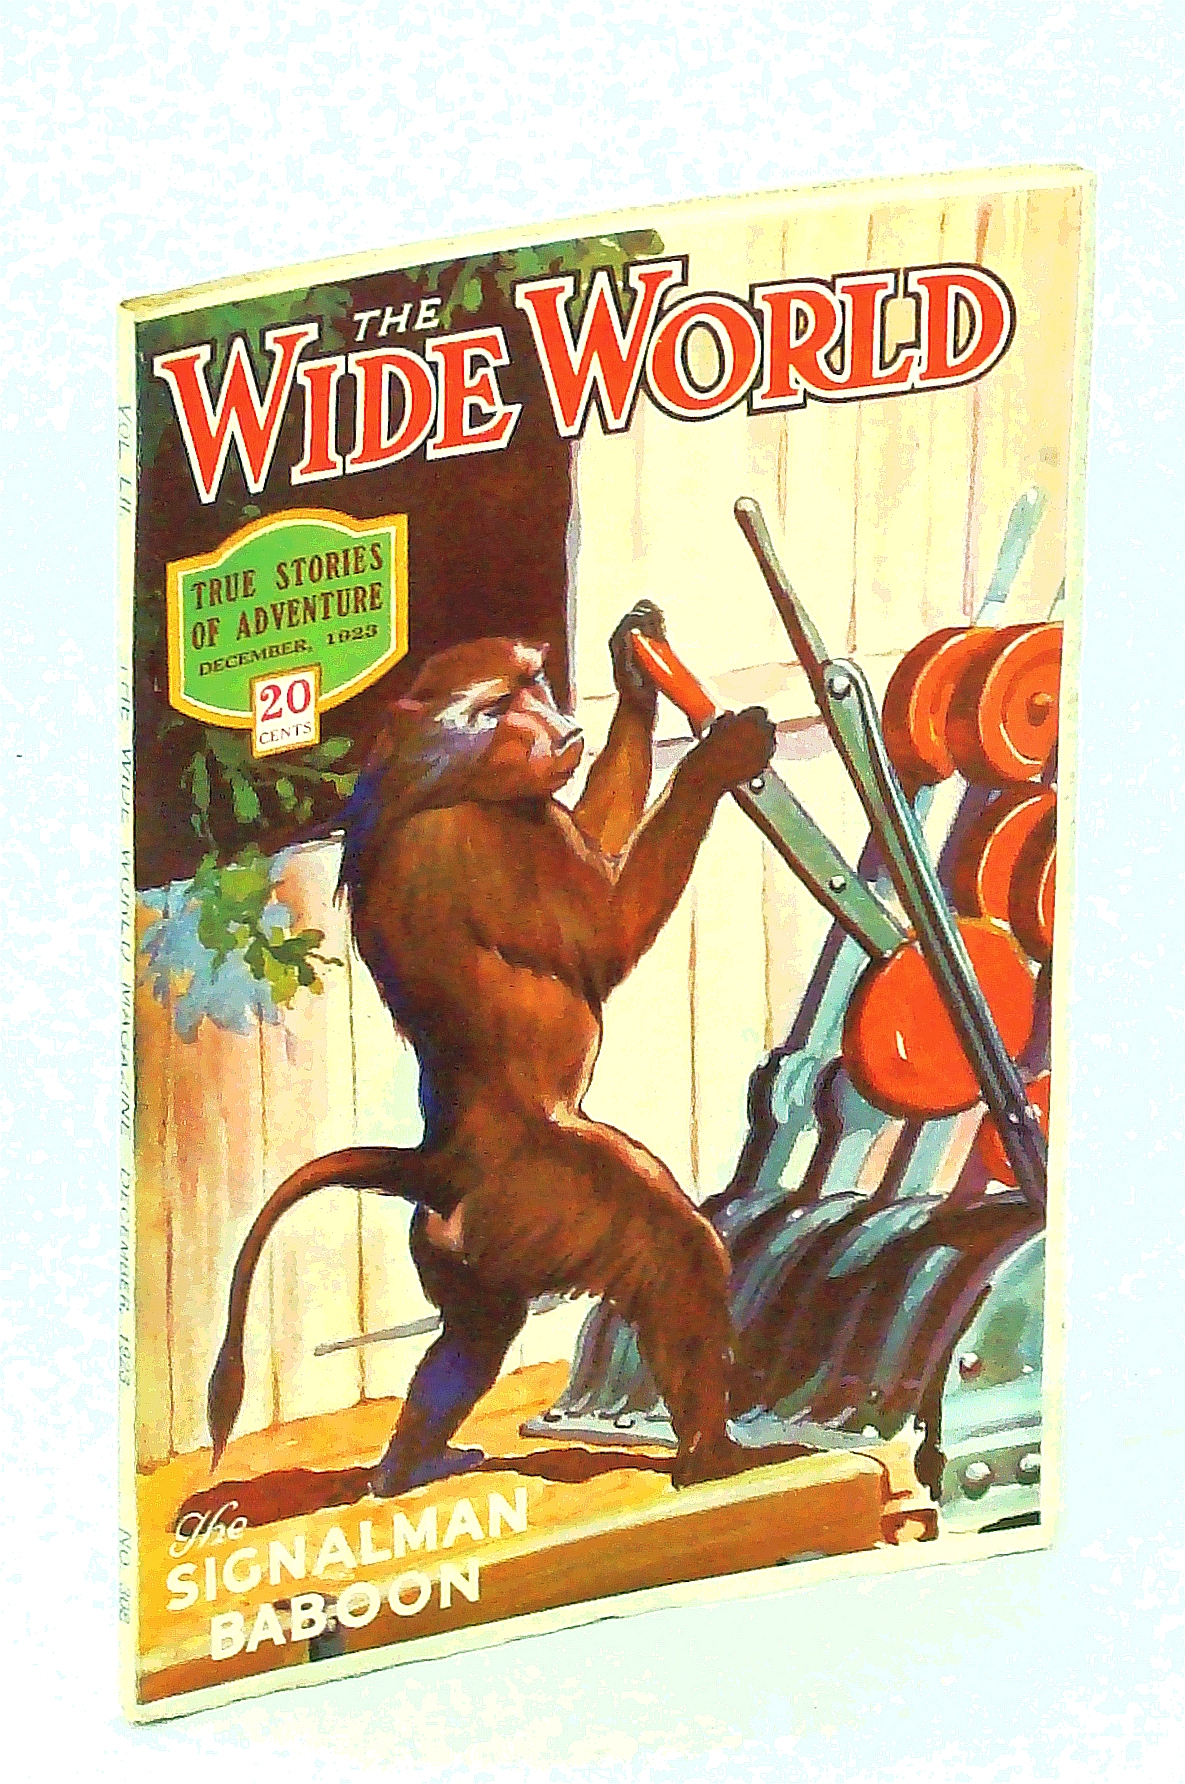 Image for The Wide World Magazine - True Stories of Adventure, December [Dec.] 1923, Vol. LII, No. 308: Exploring in Central Brazil / The Signalman Baboon